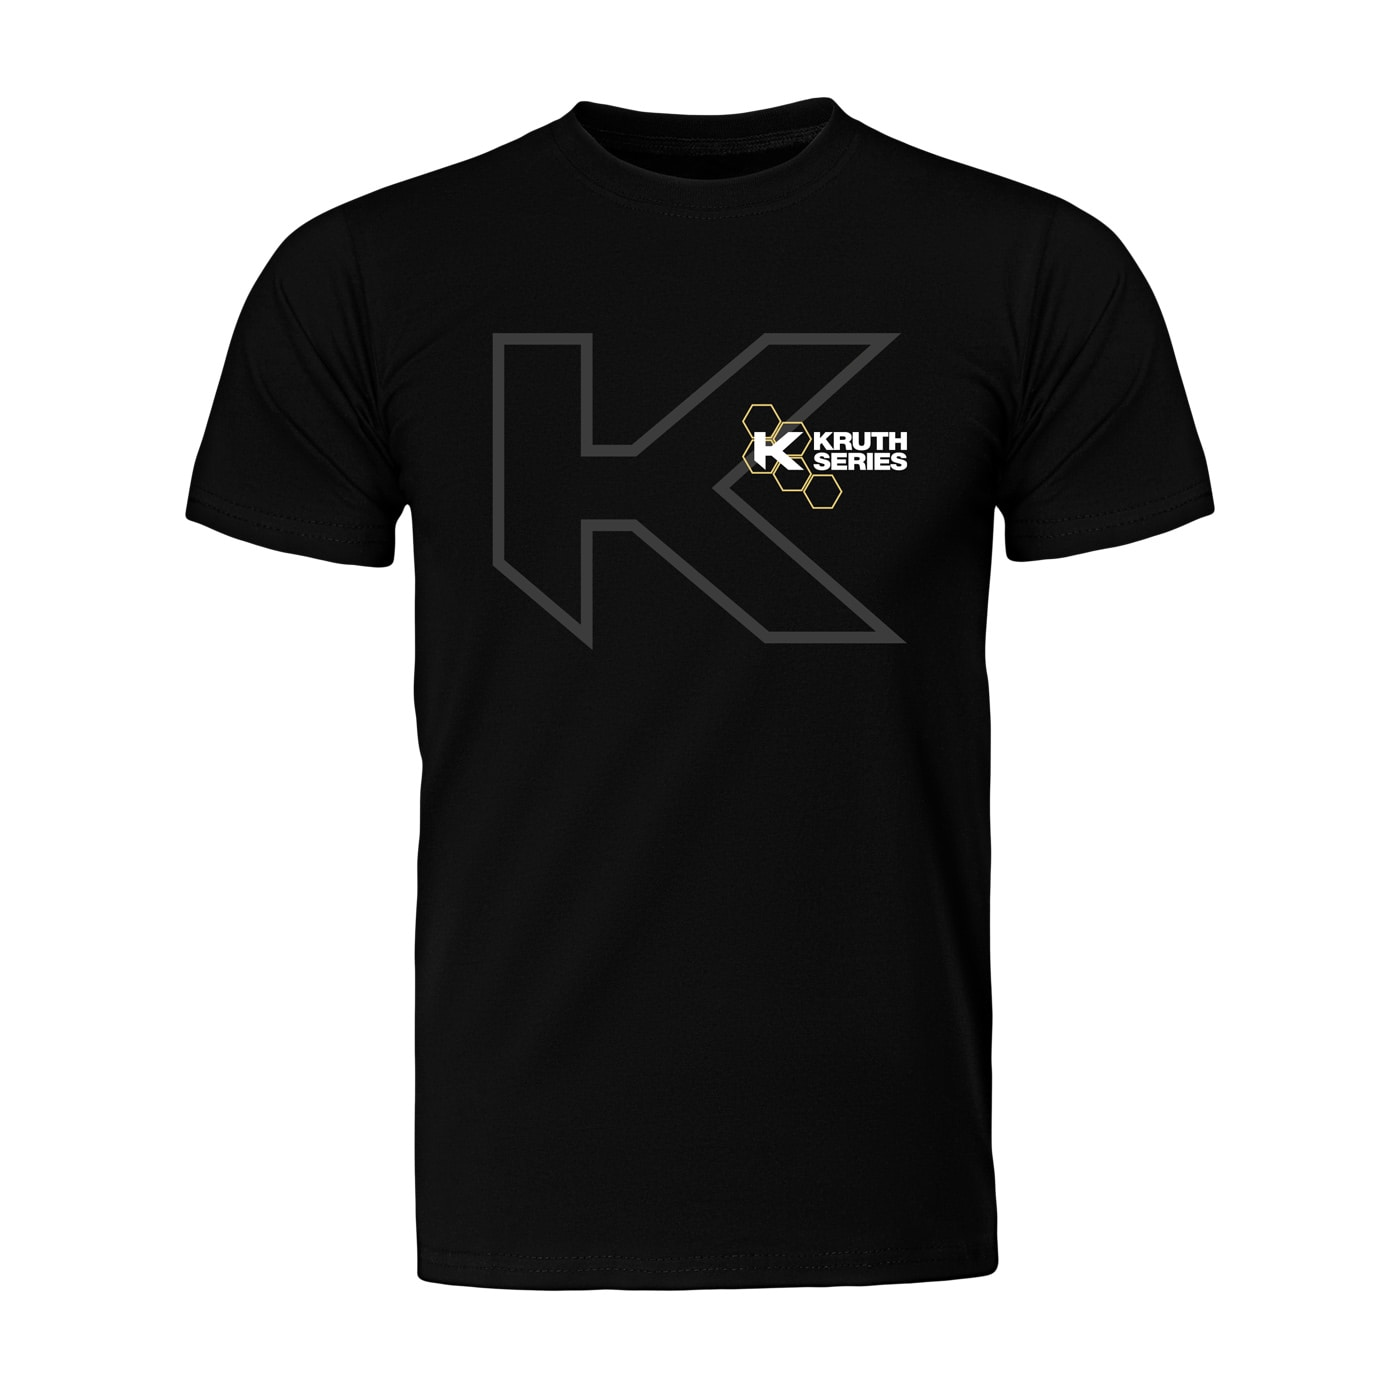 Kruth Series - Big K T-shirt Svart